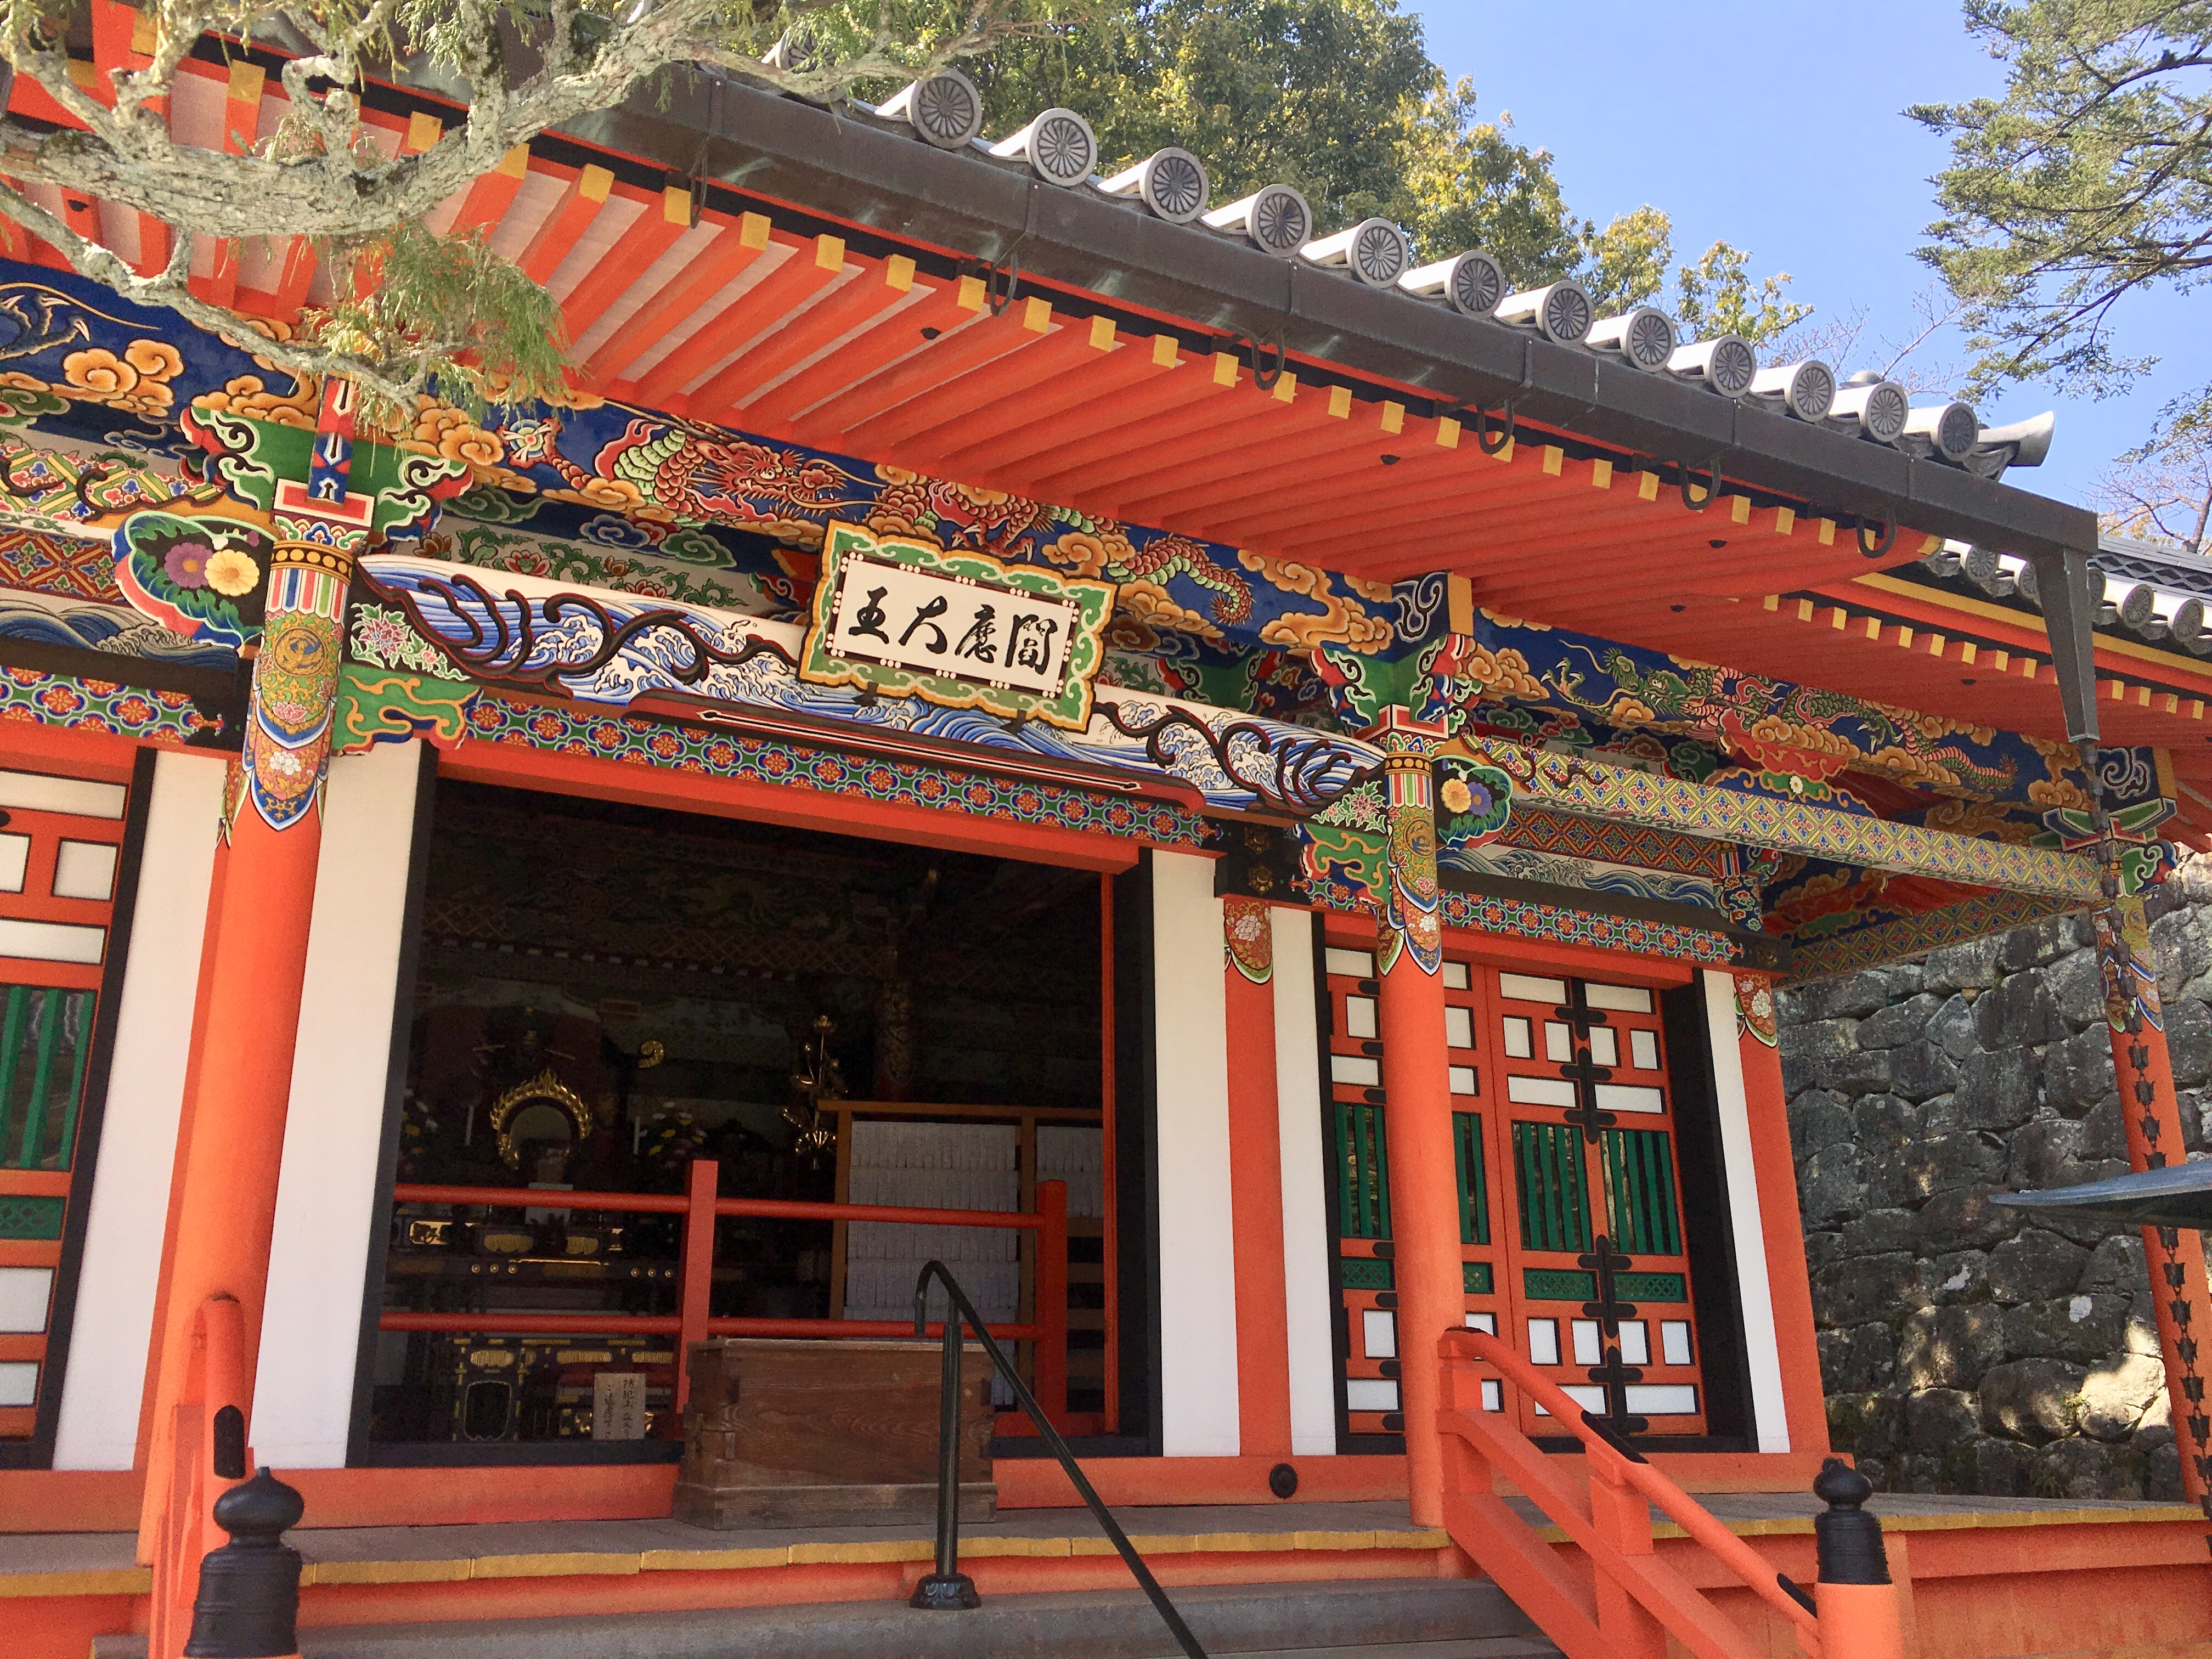 vermilion ema-do of Nakayama-dera covered in colorful paintings